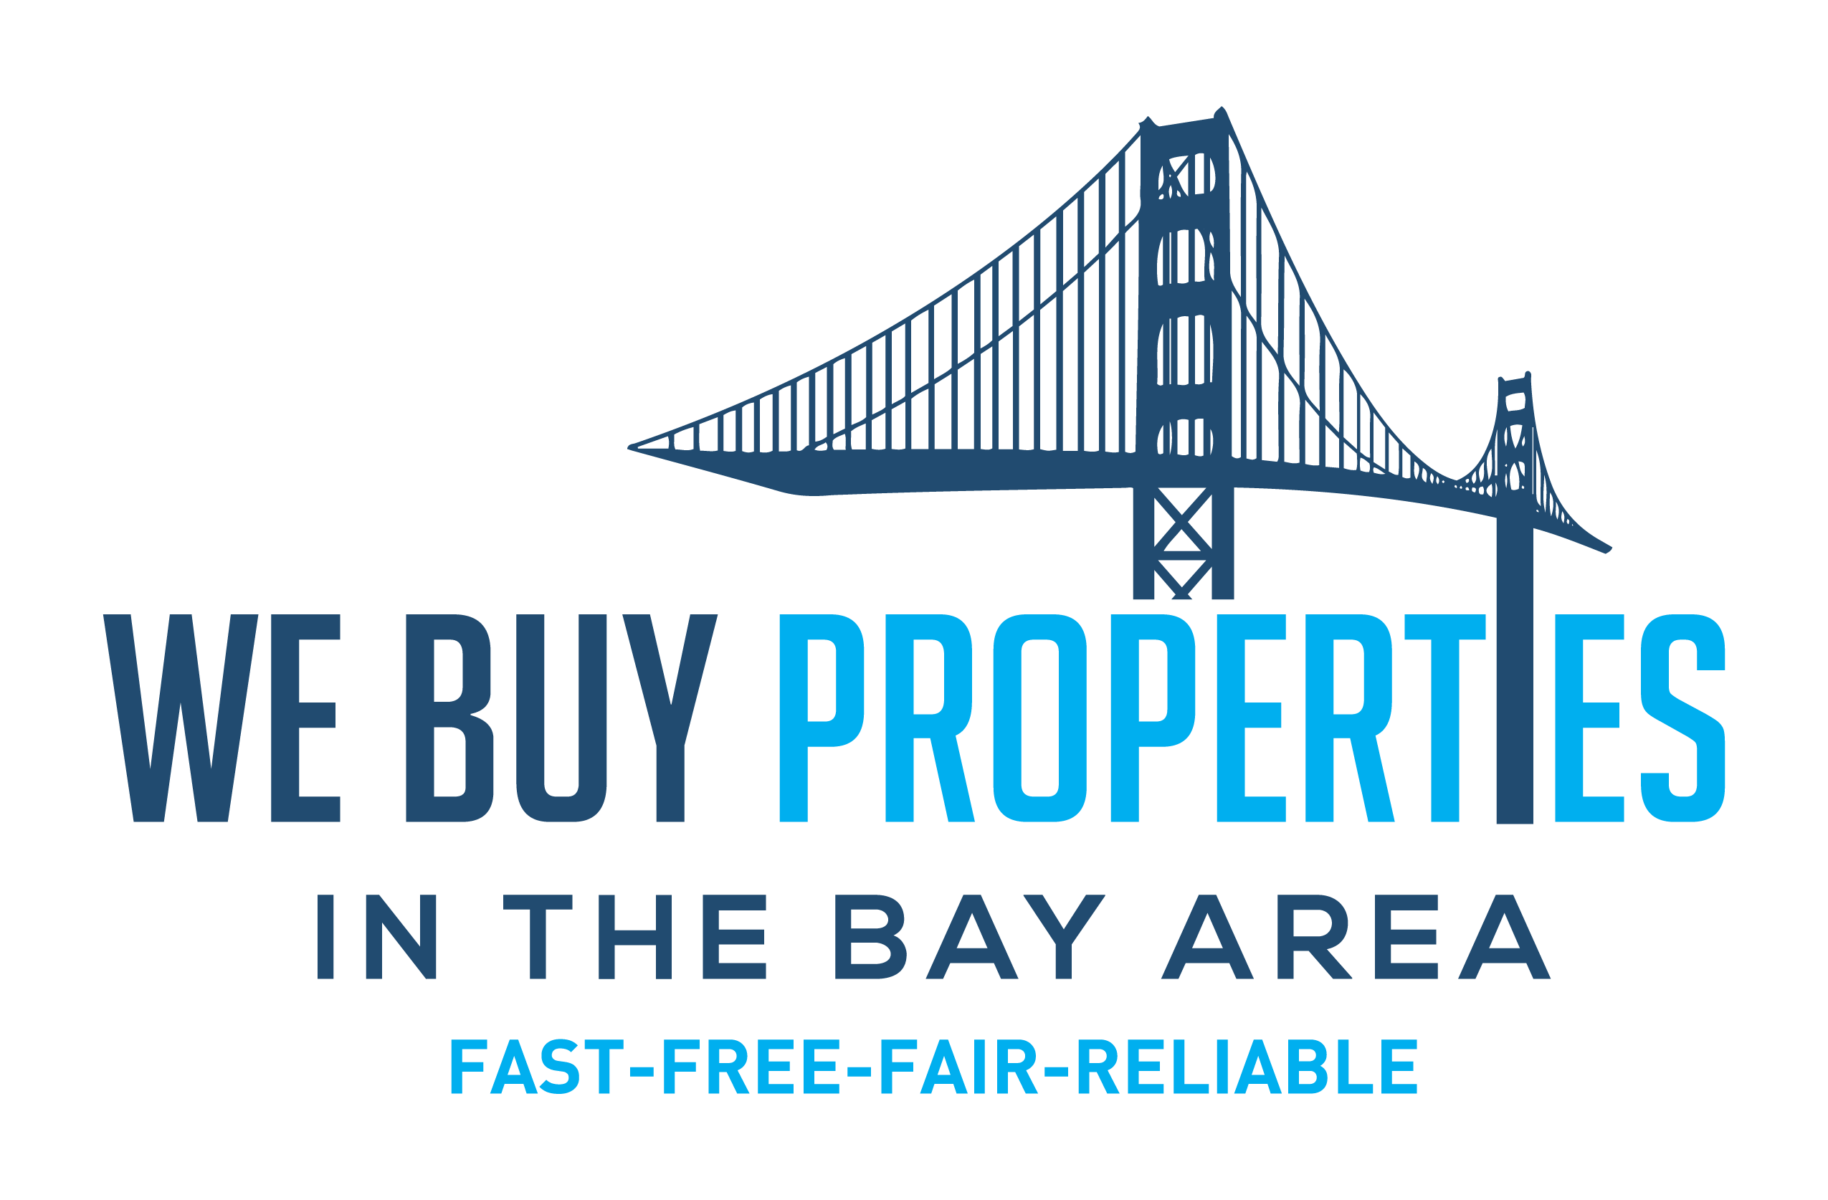 We Buy Properties in The Bay Area logo